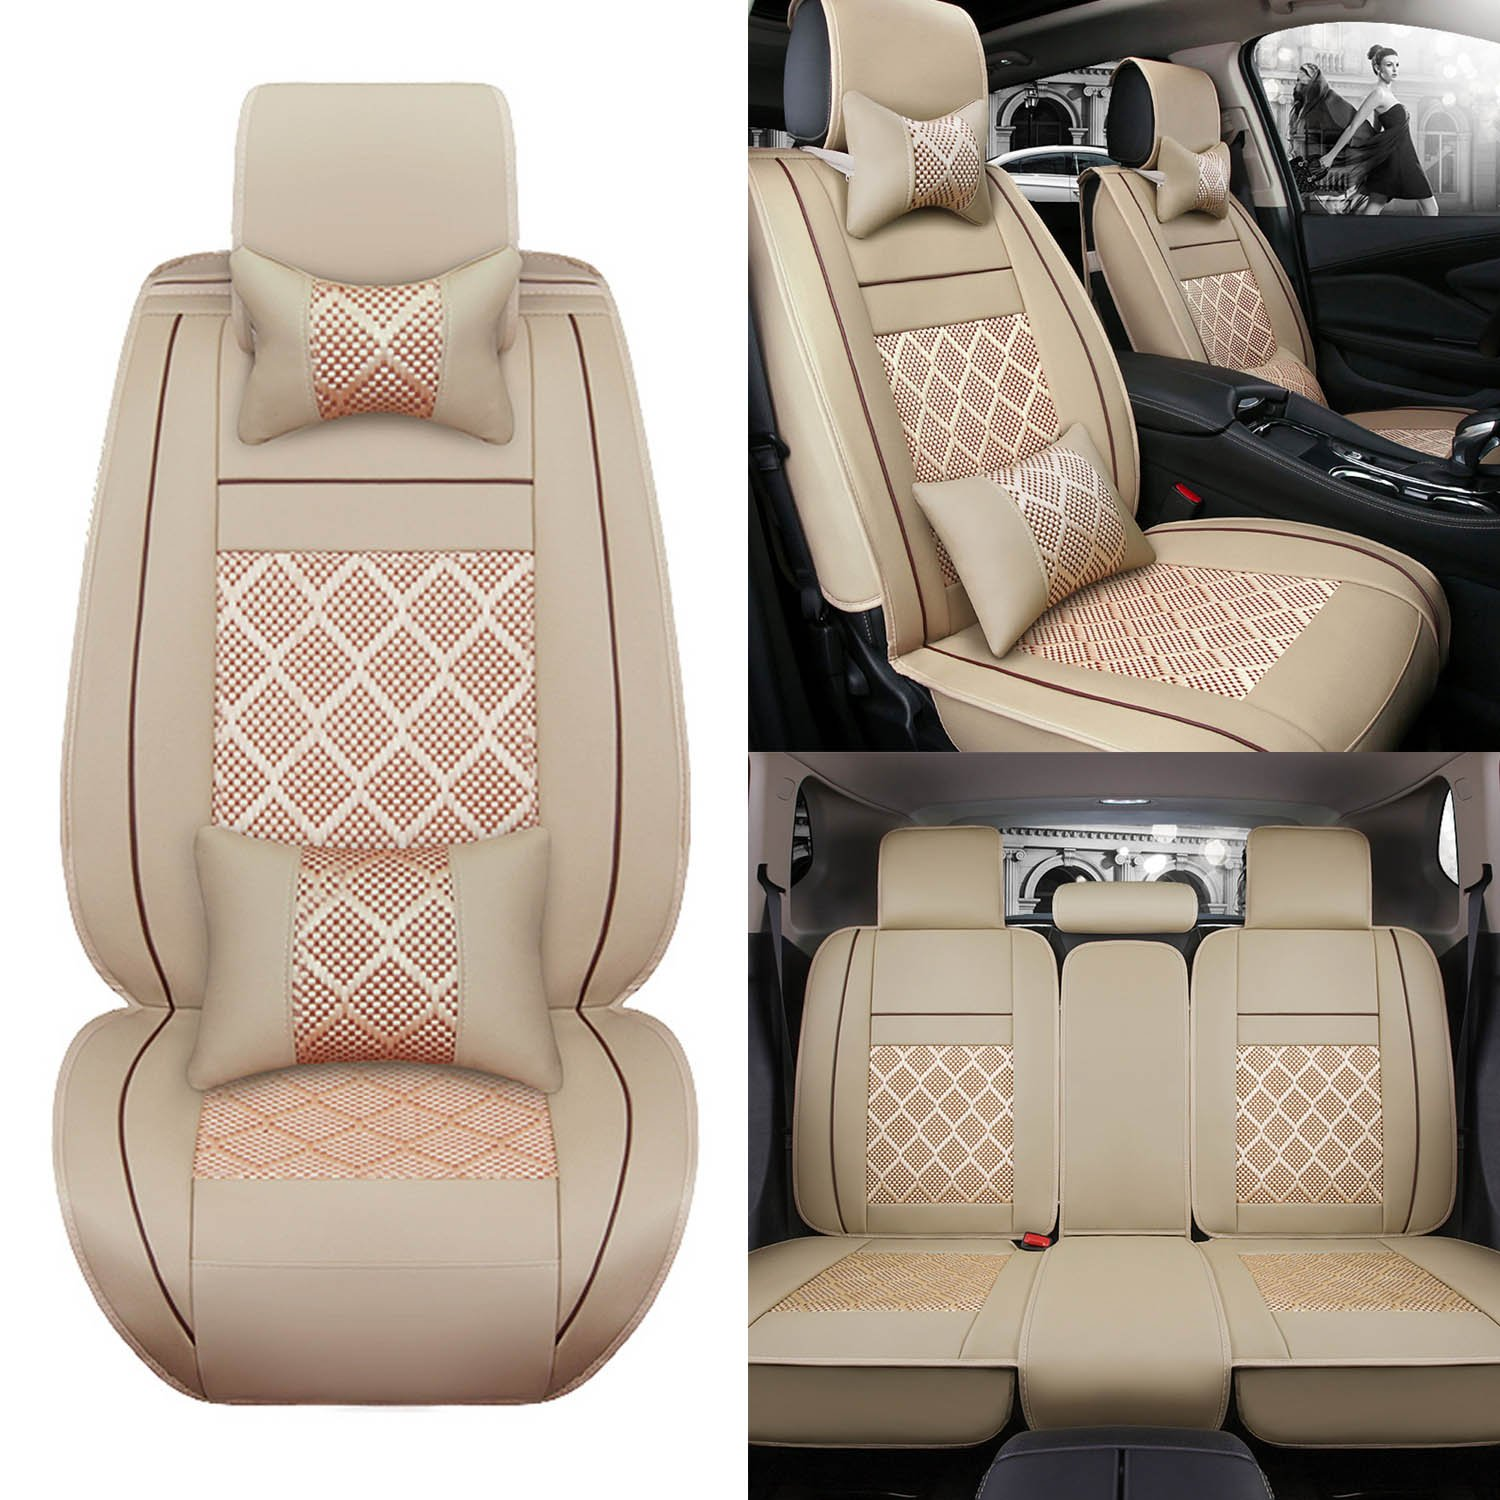 AUTOPDR 11Pcs Universal Full Surrounded Car Front& Rear Seat Covers Auto 5 Seats Cover Set Car Interior Accessories Seat Cushions for All Seasons(Beige)